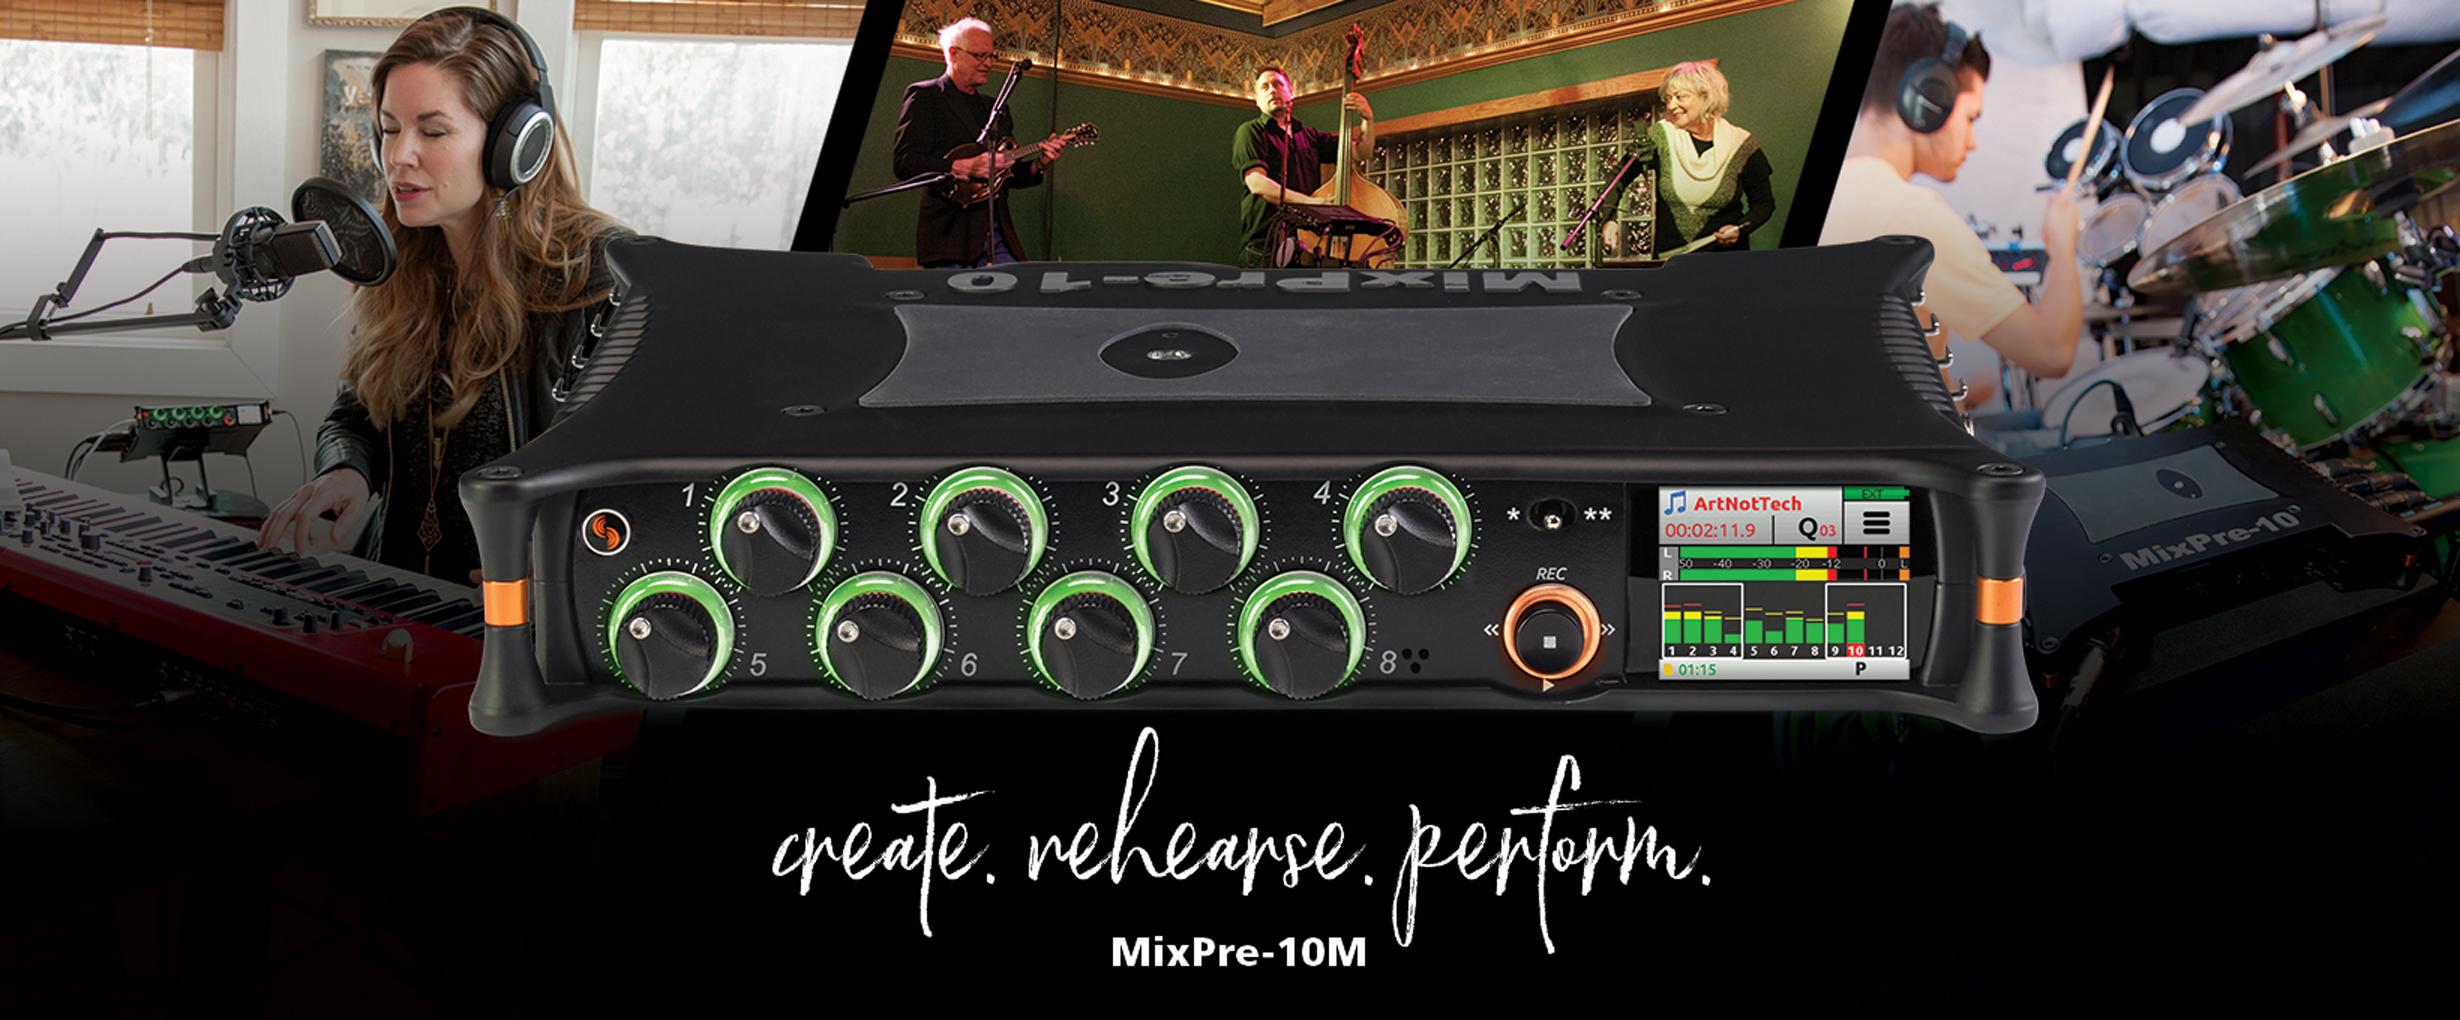 Introducing the MixPre-10M Recorder for Musicians